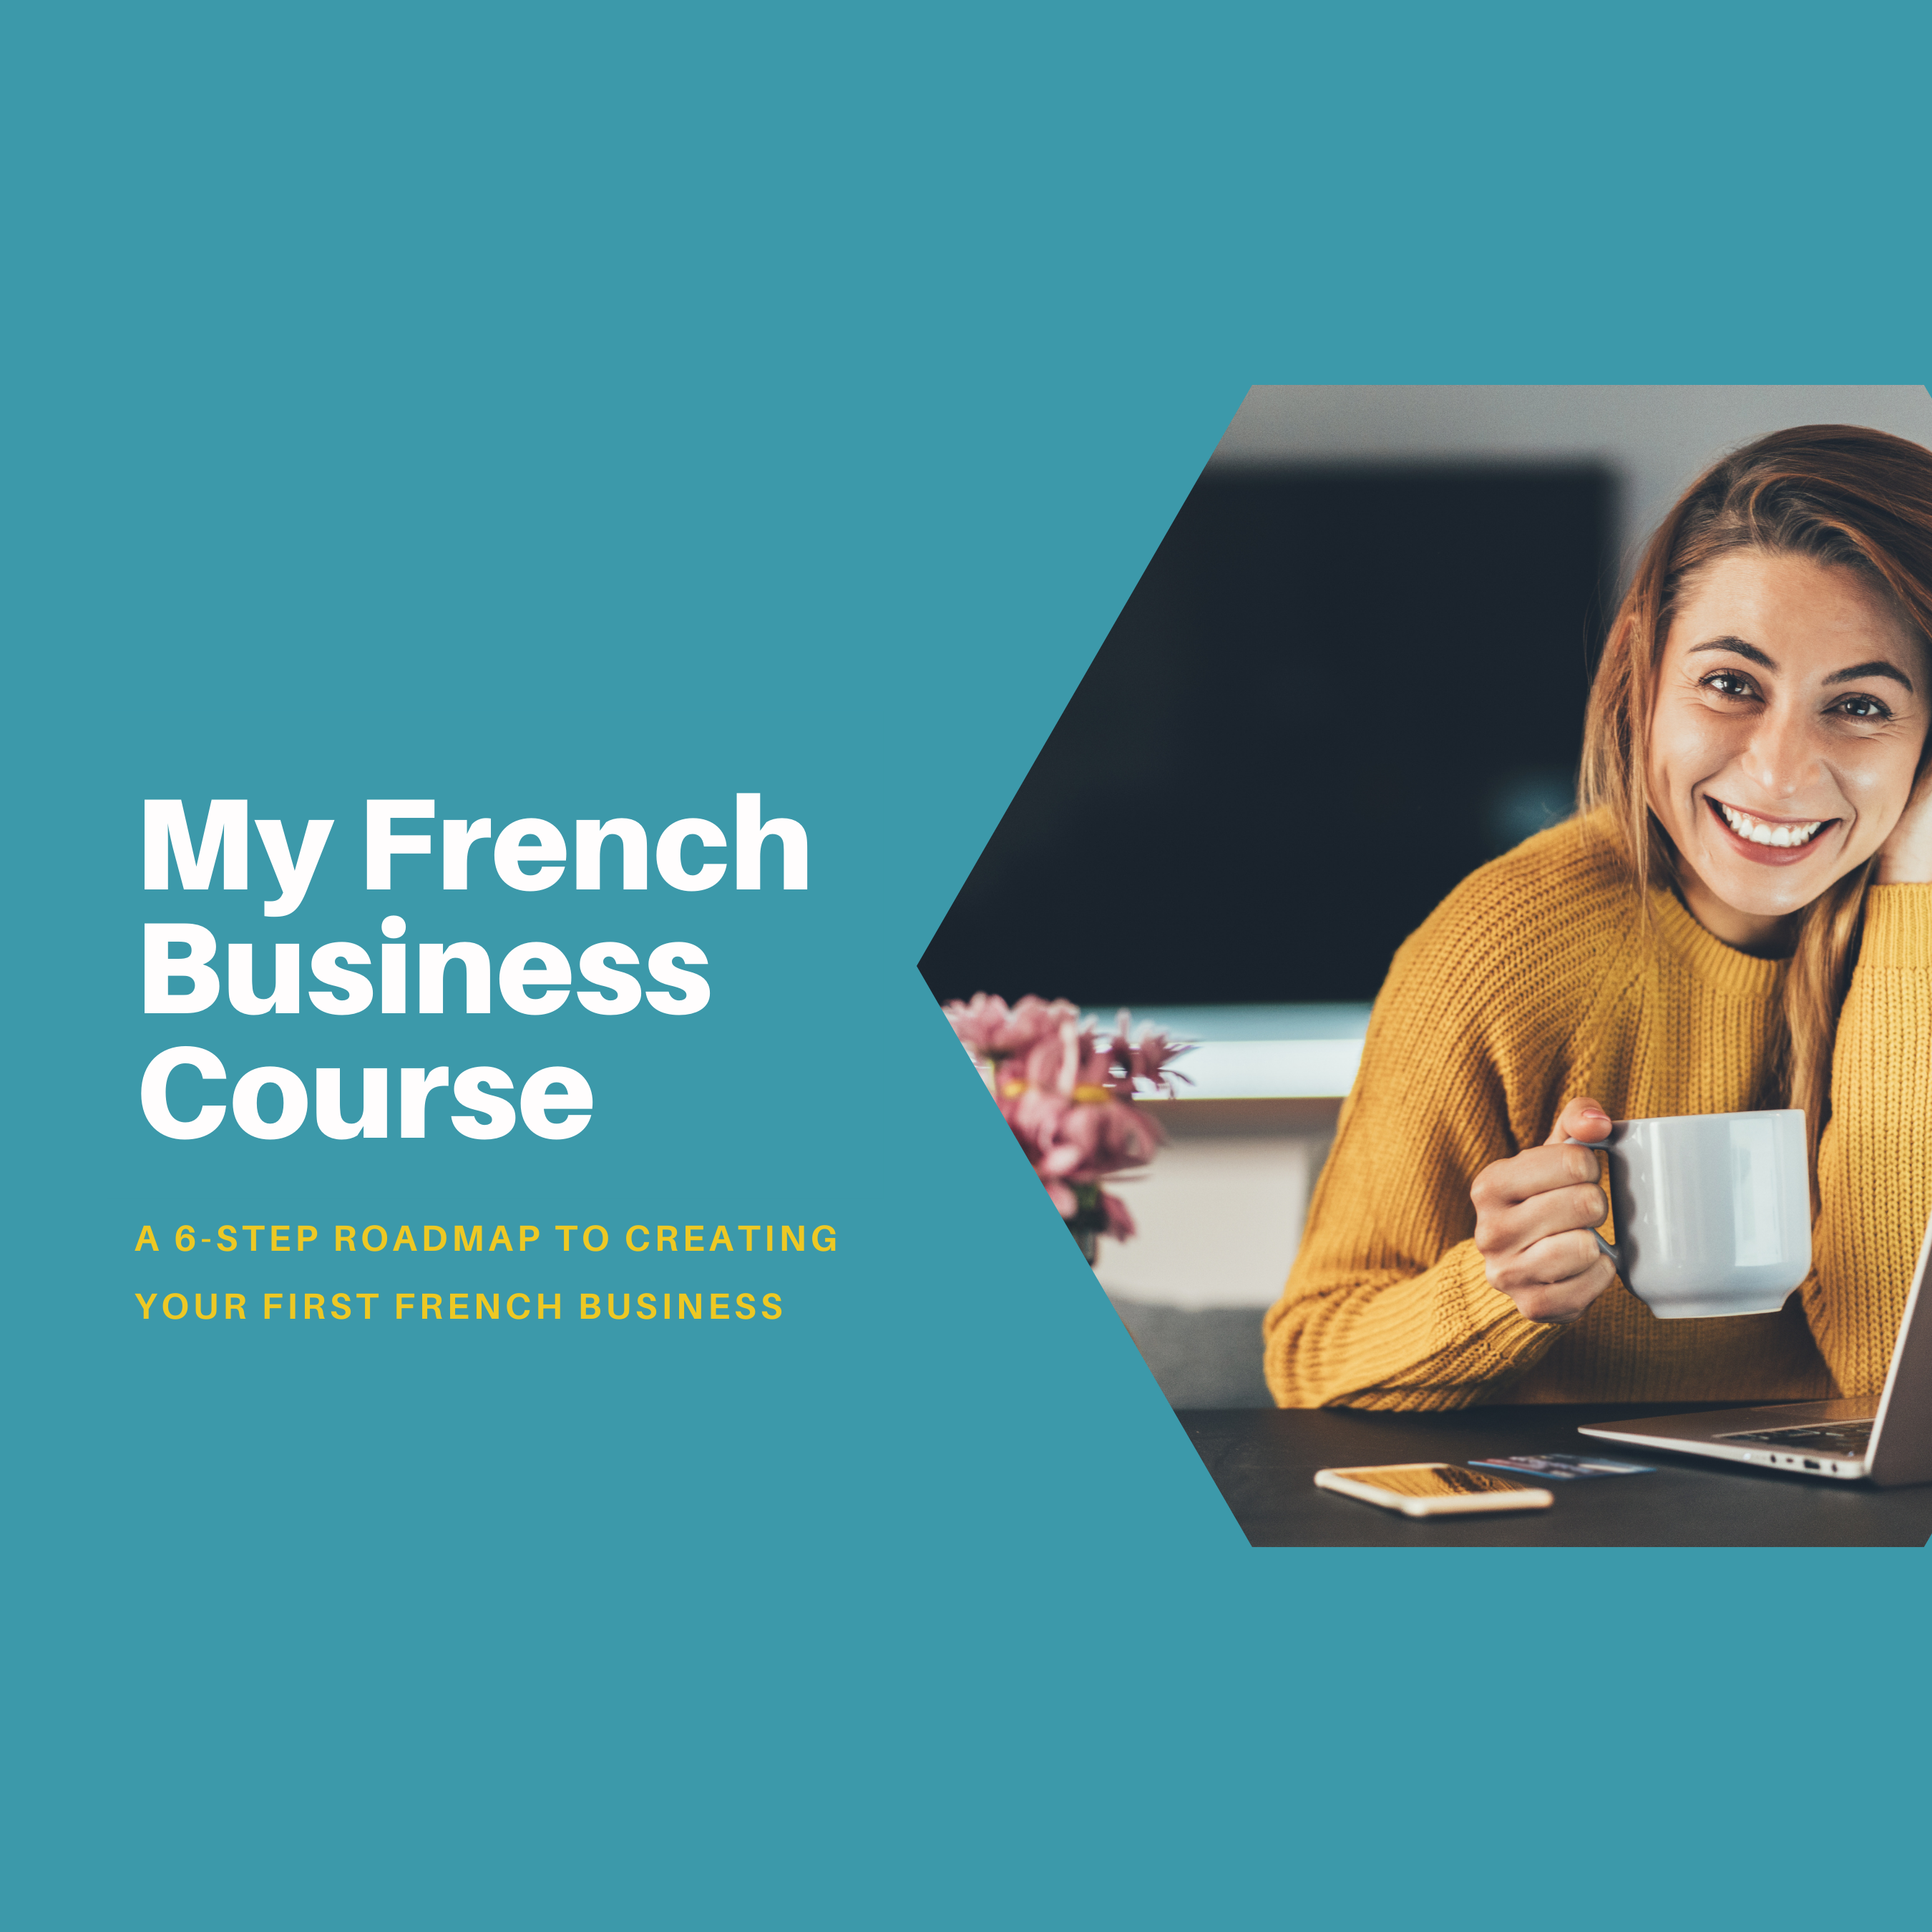 My French Business Course